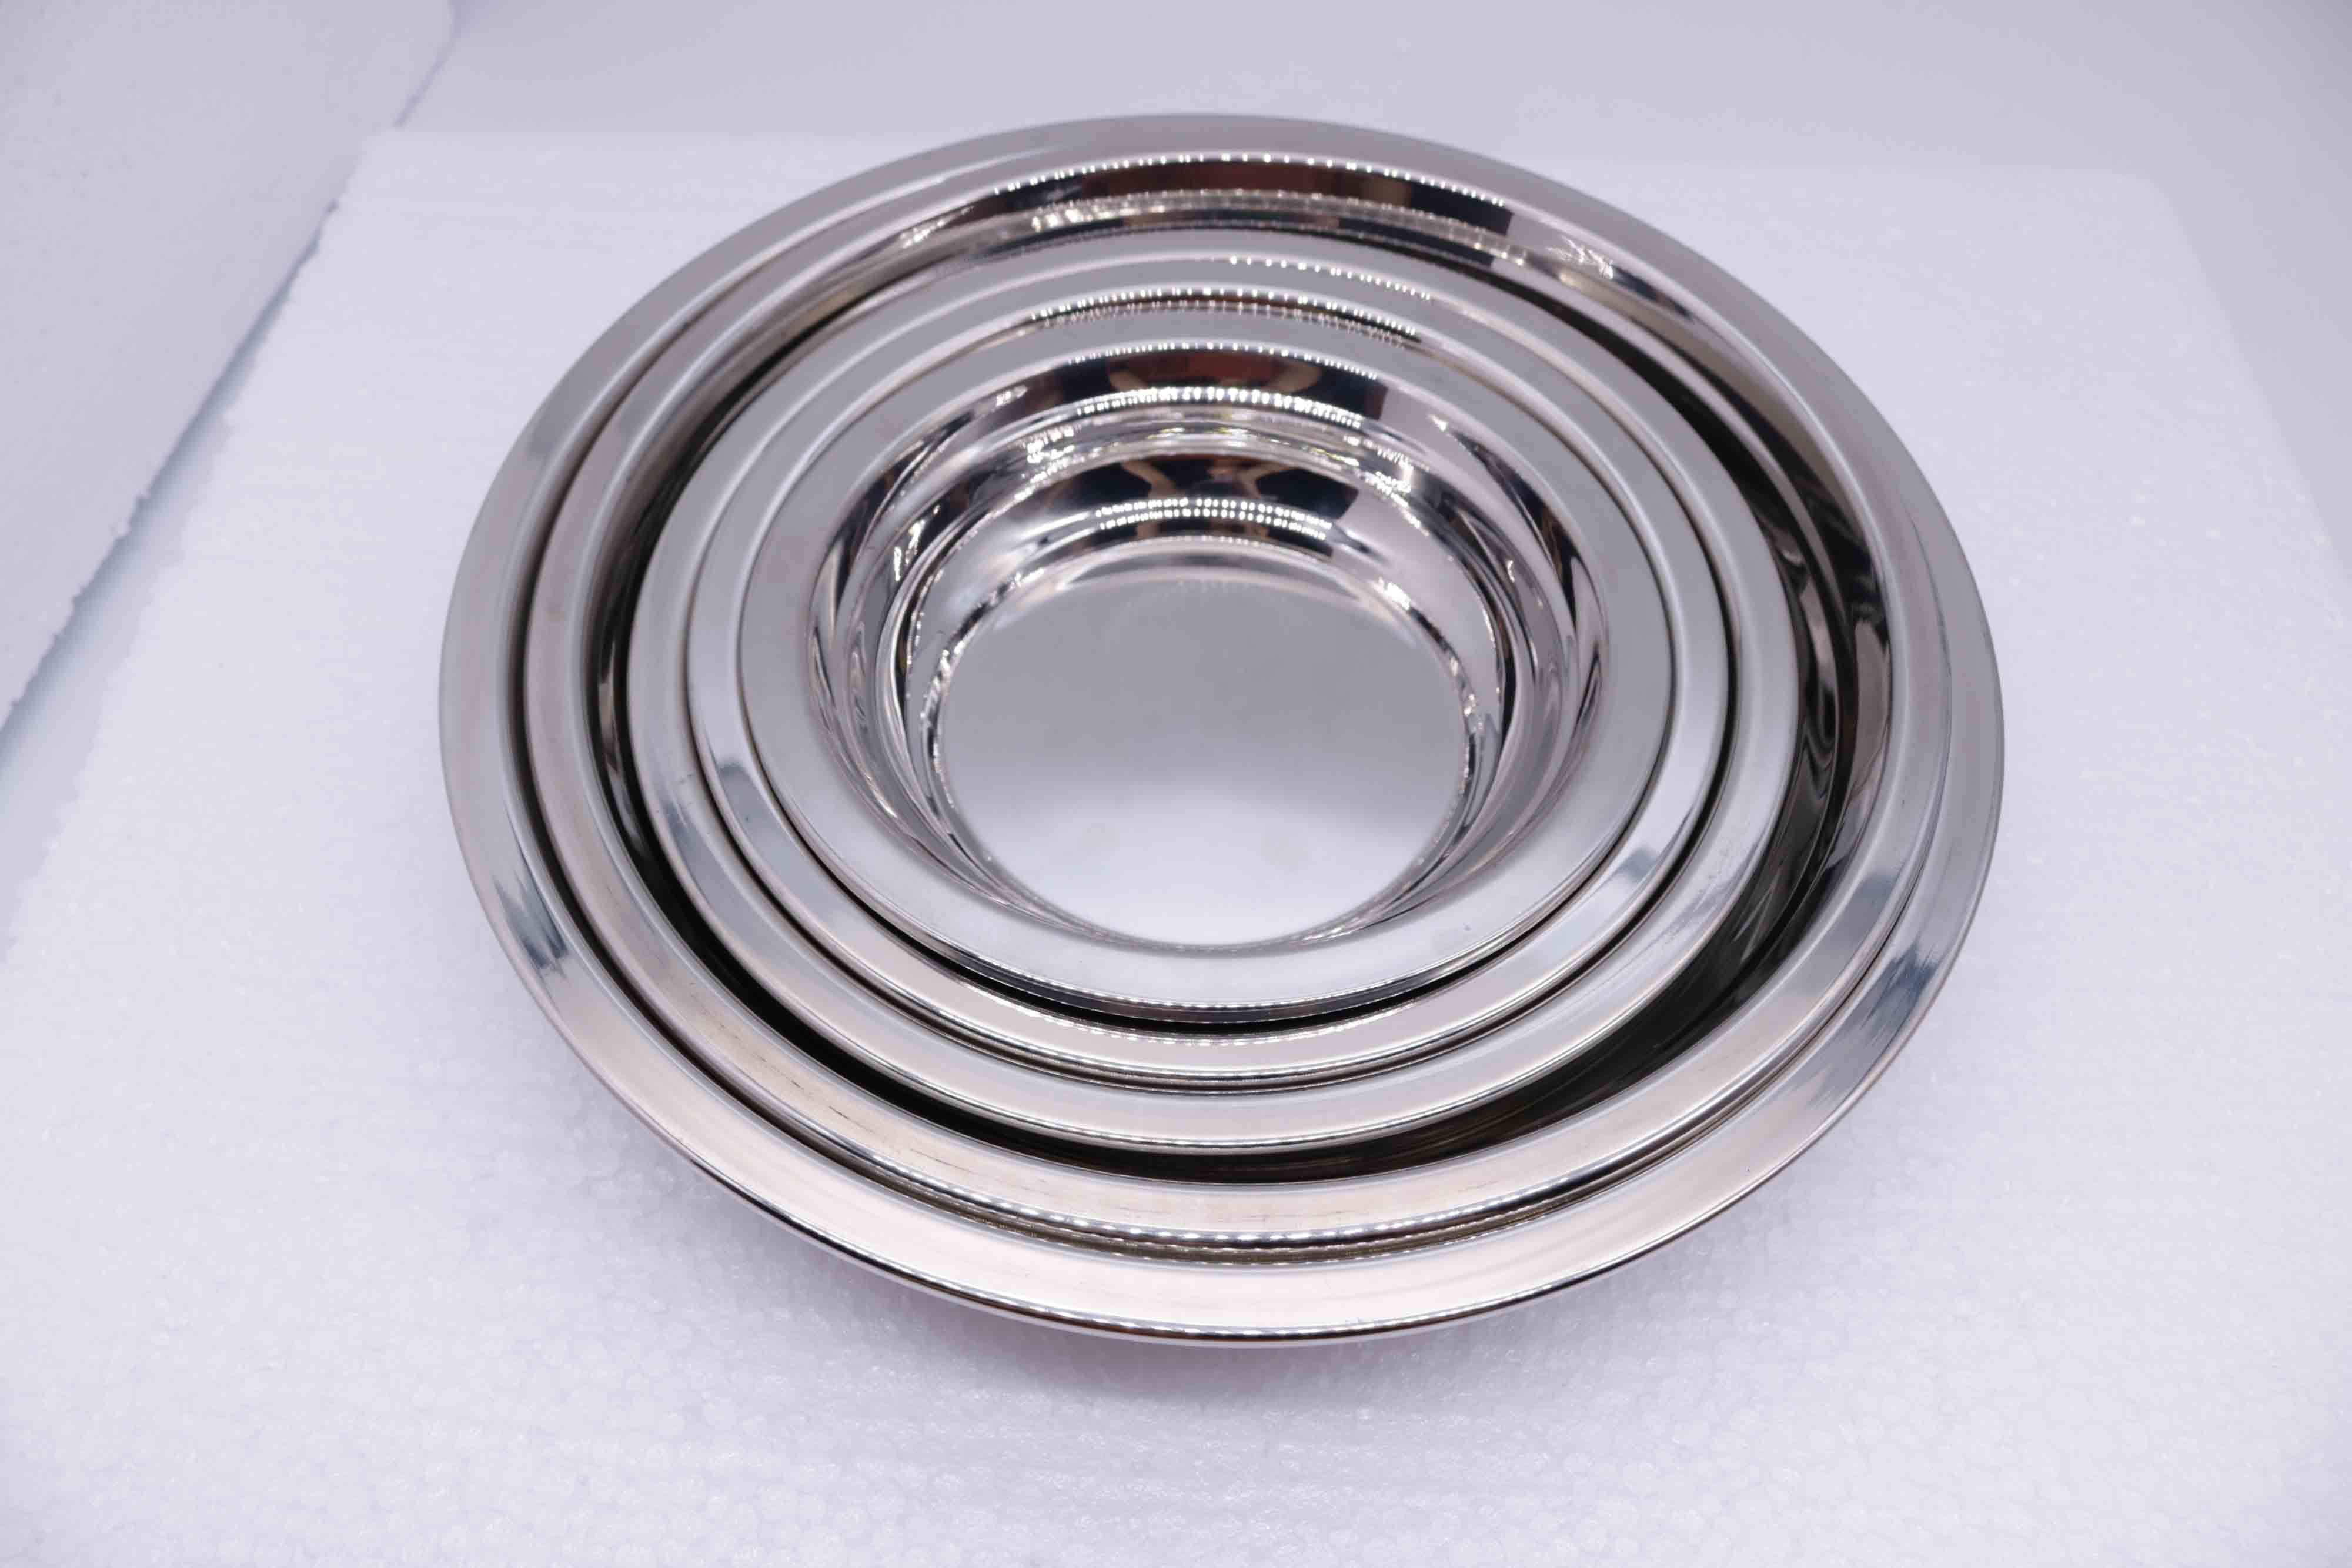 Top Grade 304 (18-8) Stainless Steel Plate for Tableware